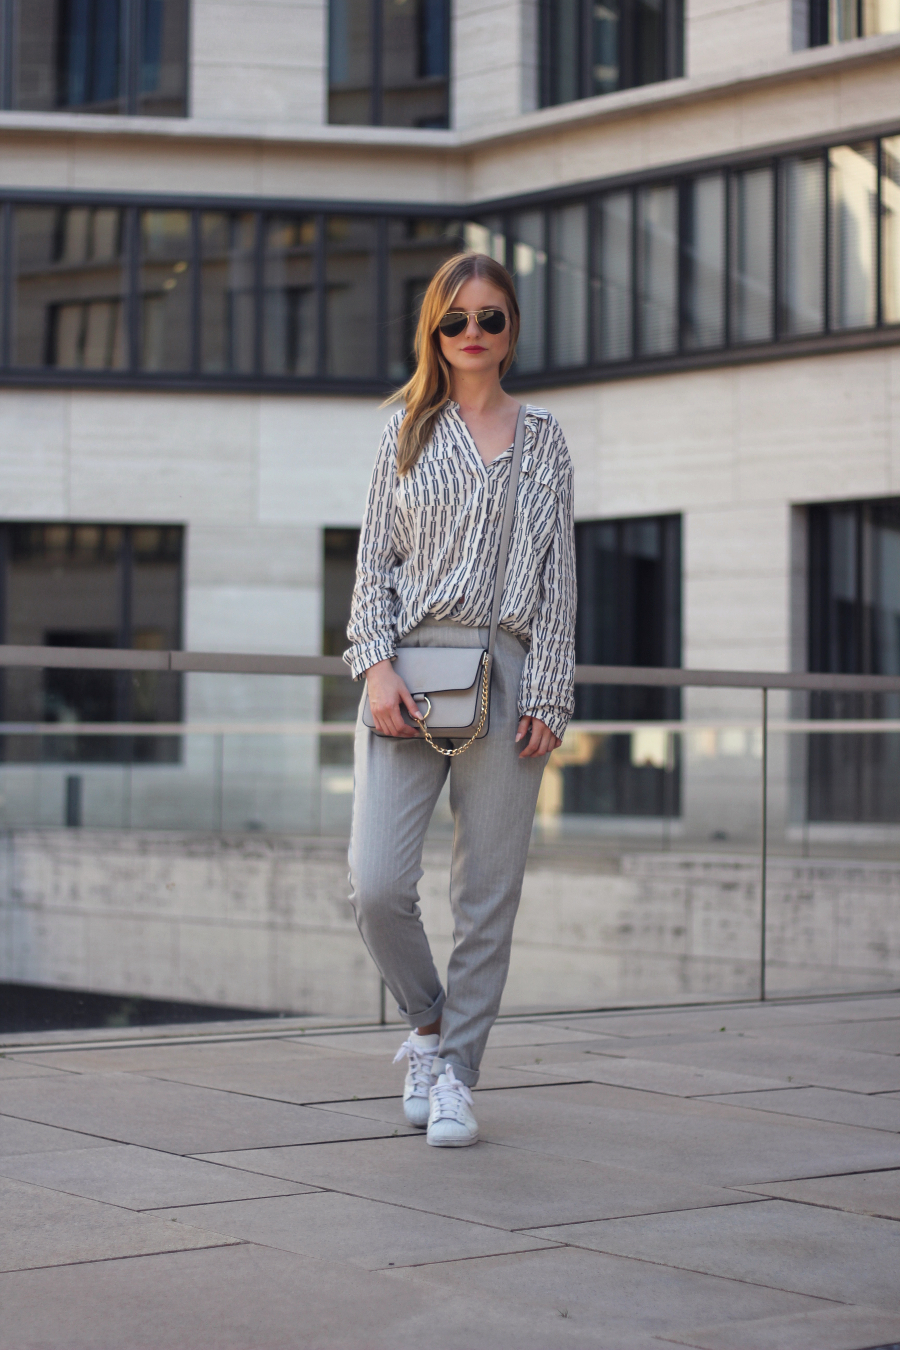 outfit glamourous hose esprit bluse ton in ton grau weiß adidas superstars chloe dupe yesstyle rayban